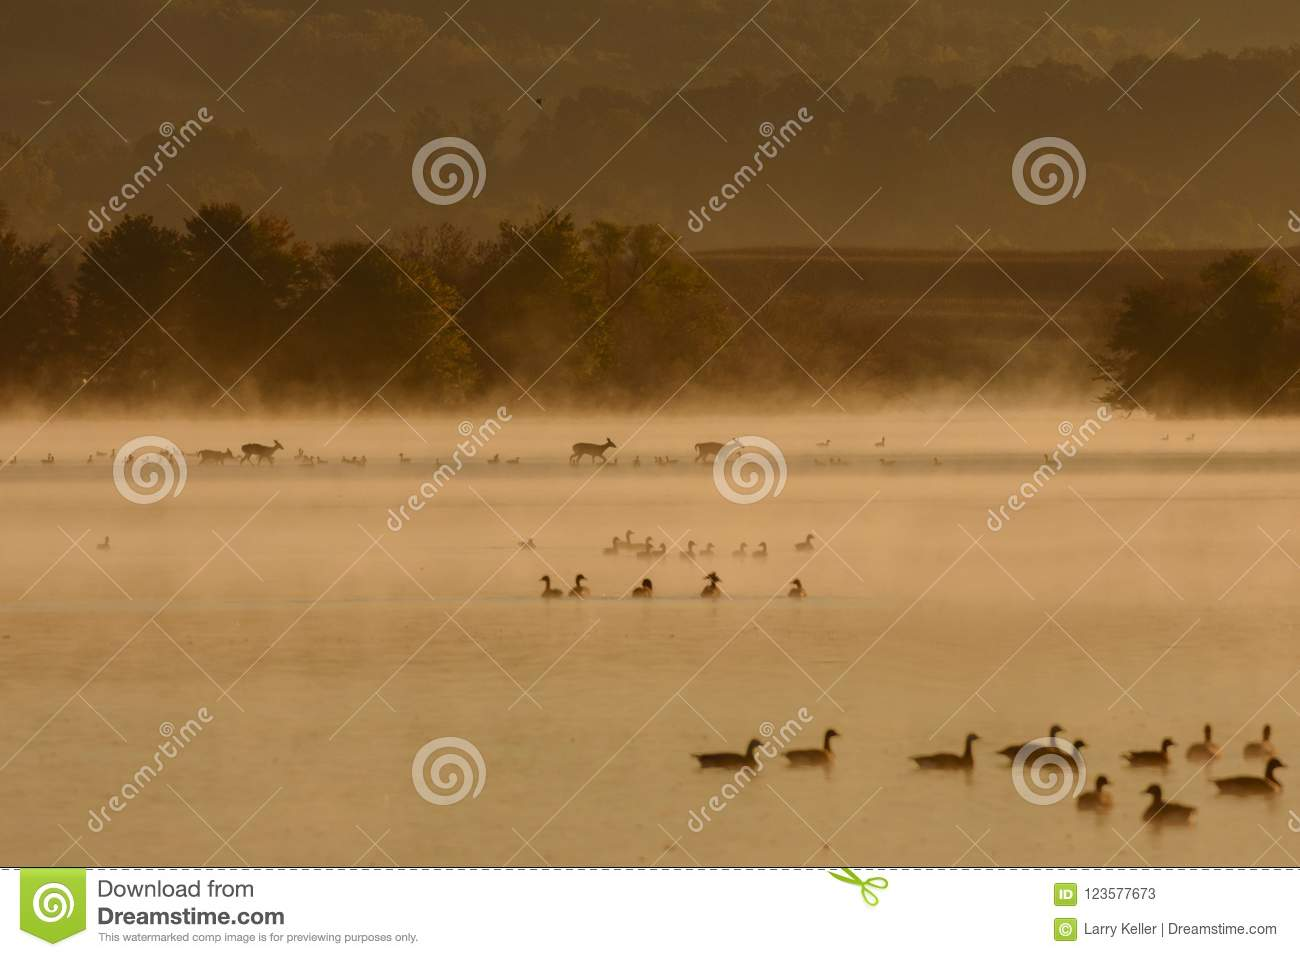 Whitetail deer crossing a lake guarded by Geese